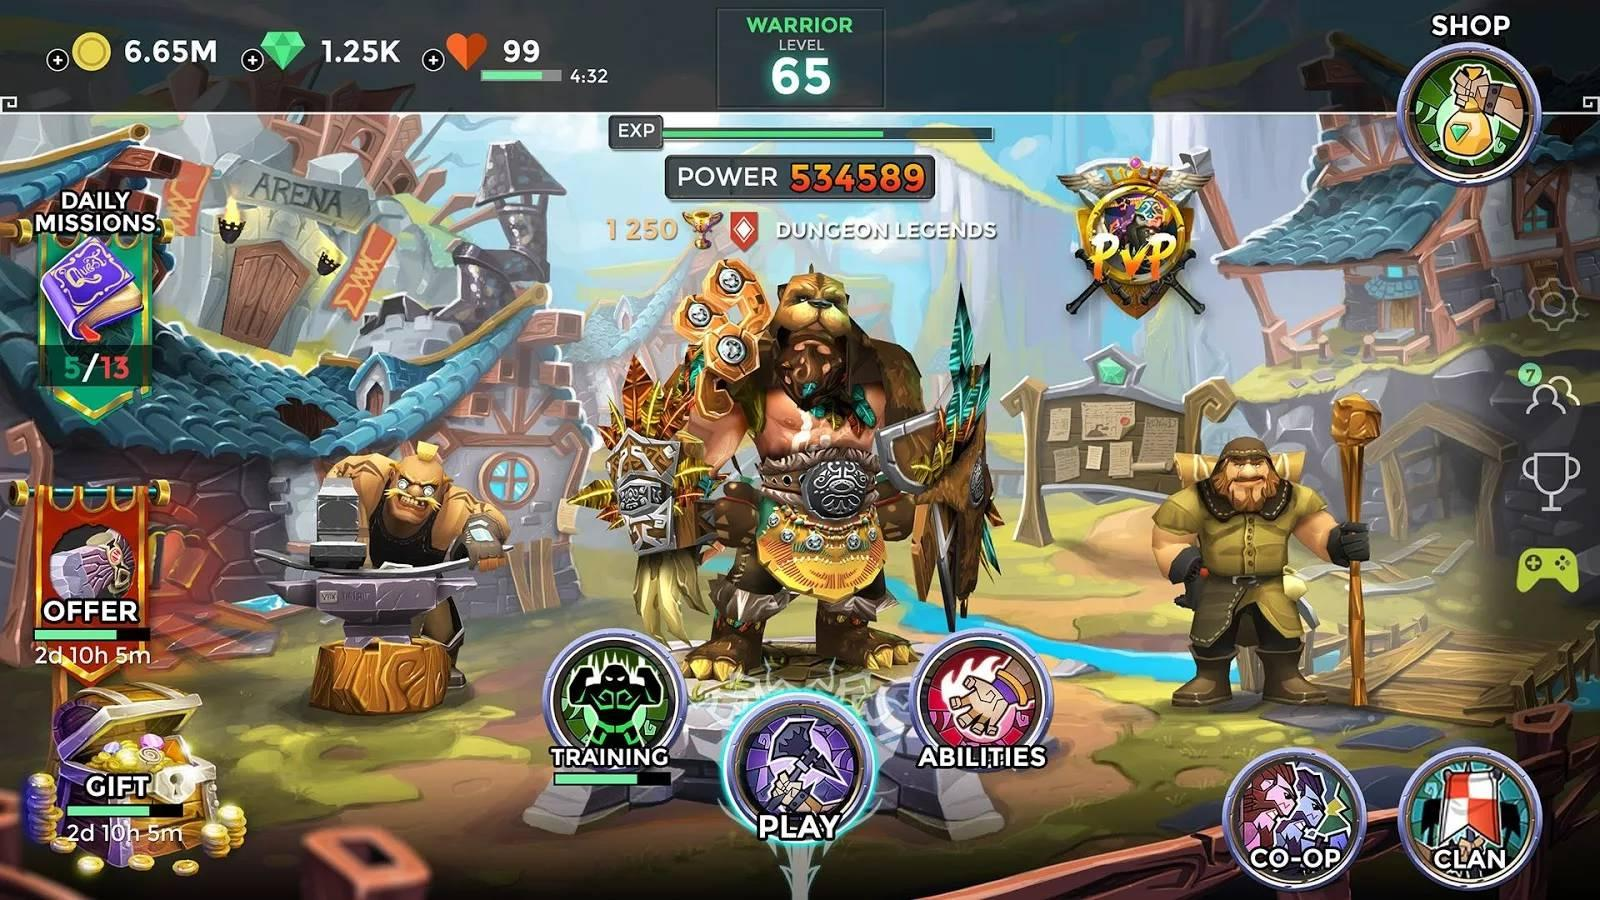 dungeon hunter 3 apk mod three phase motor control wiring diagram legends v2 90 terbaru unlimited gold gems